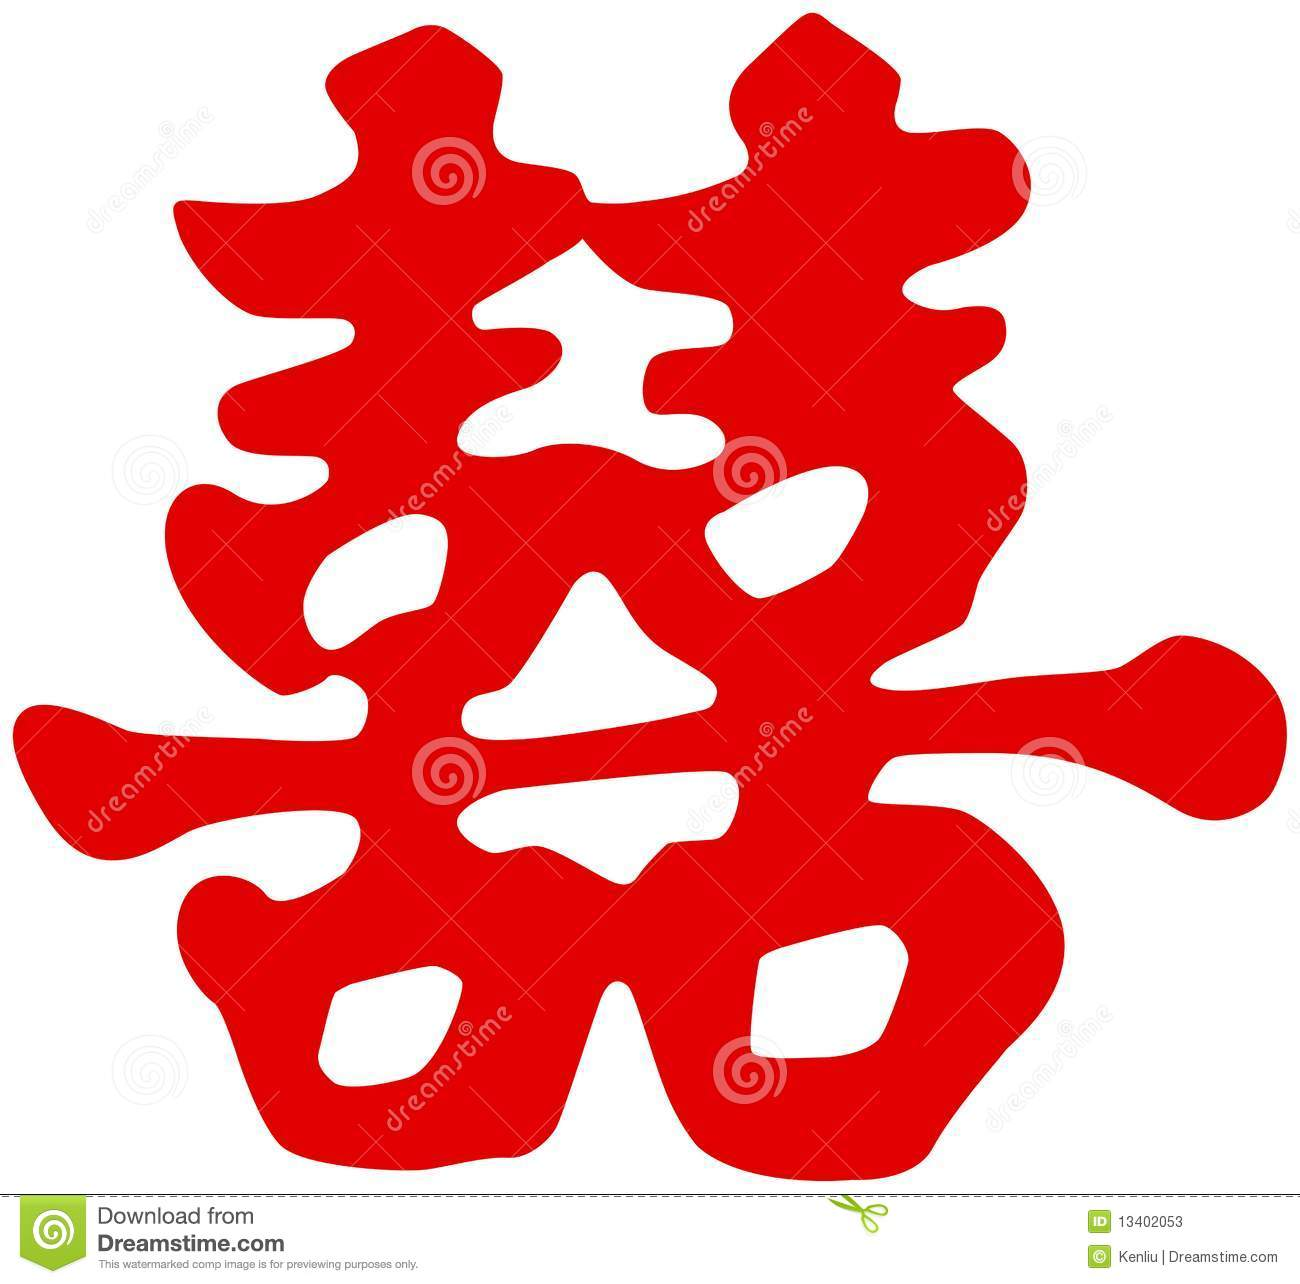 Double happiness clipart free jpg freeuse download Chinese Happiness Symbol Stock Photos - Image: 13402053 jpg freeuse download